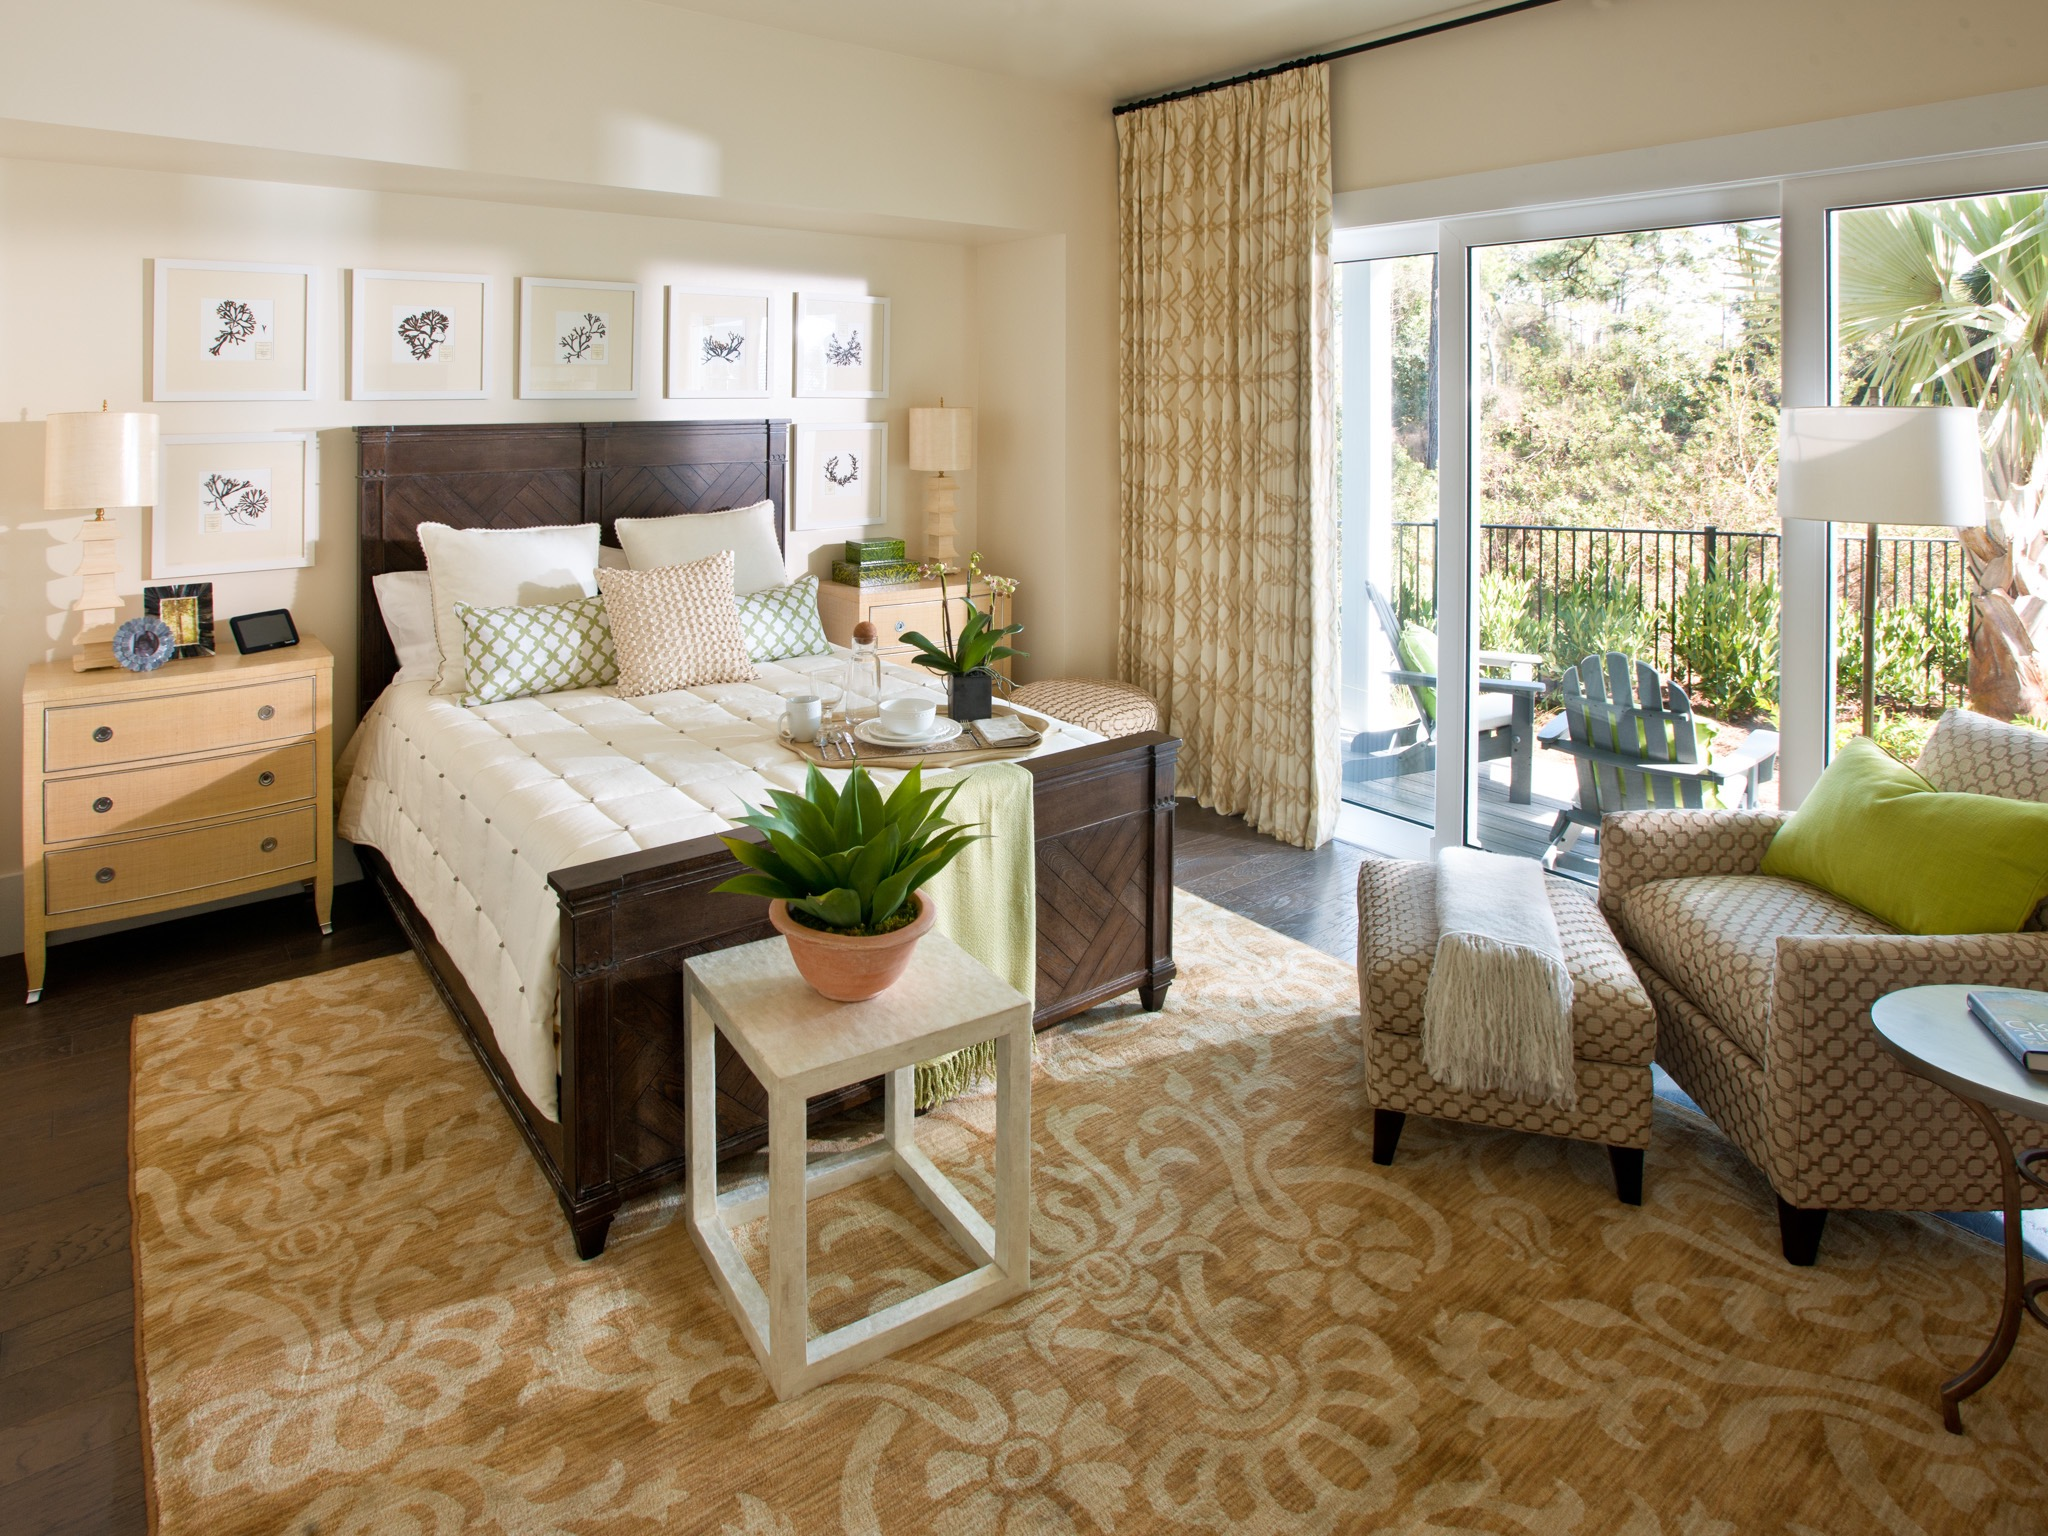 Modern Sliding Glass Door For Modern Contemporary Master Bedroom With Warm Hickory Floors (View 6 of 13)